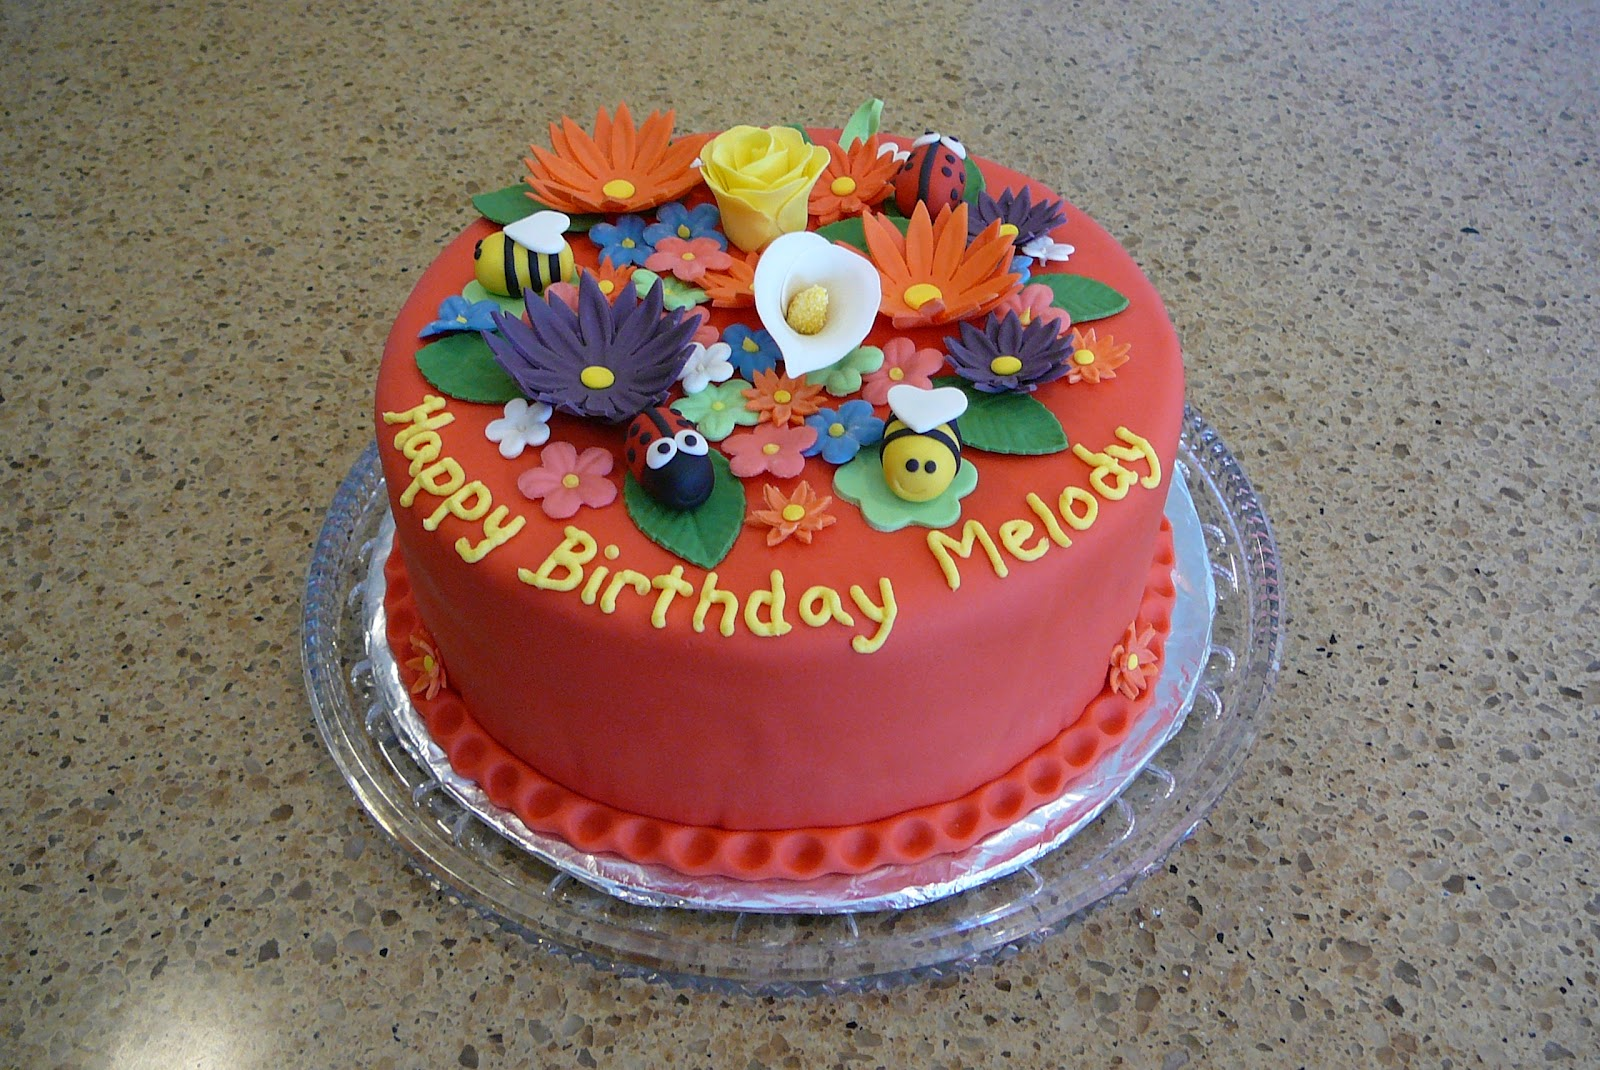 Rise and bake a flower garden cake it was a chocolate cake underneath with a buttercream filling pretty standard stuff melody helped me make the 4 bugs on the cake and we had great fun izmirmasajfo